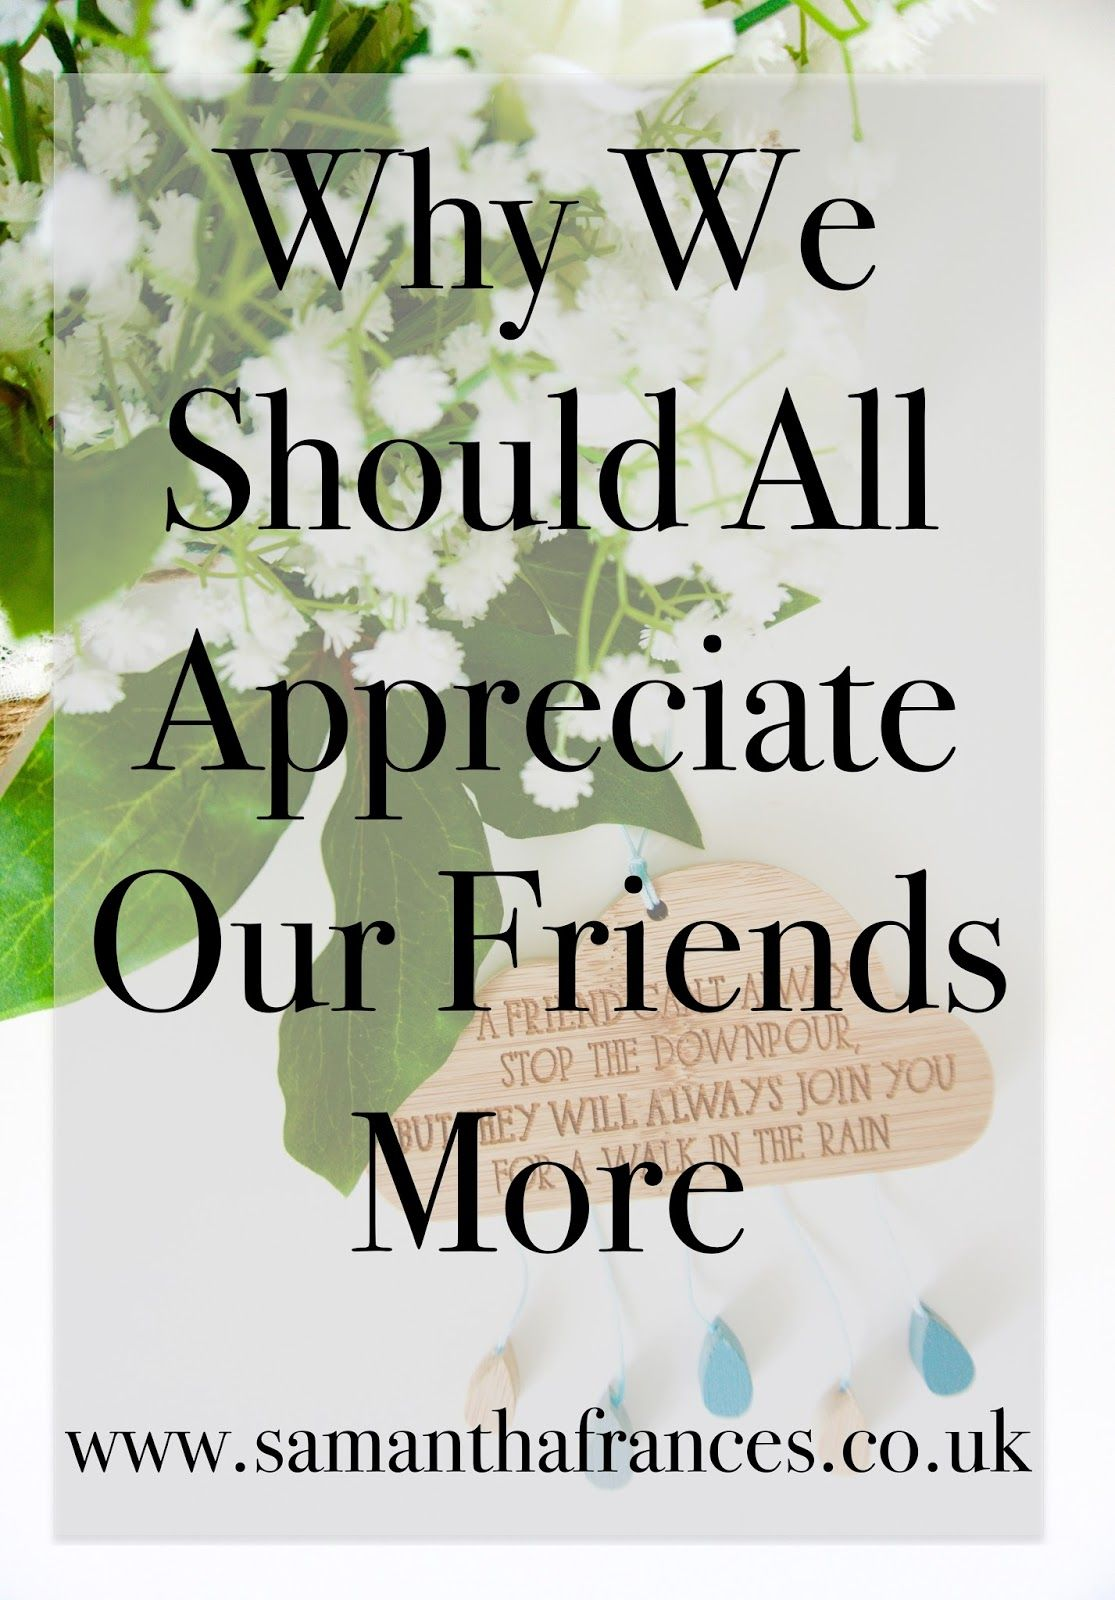 why we should all appreciate our friends more